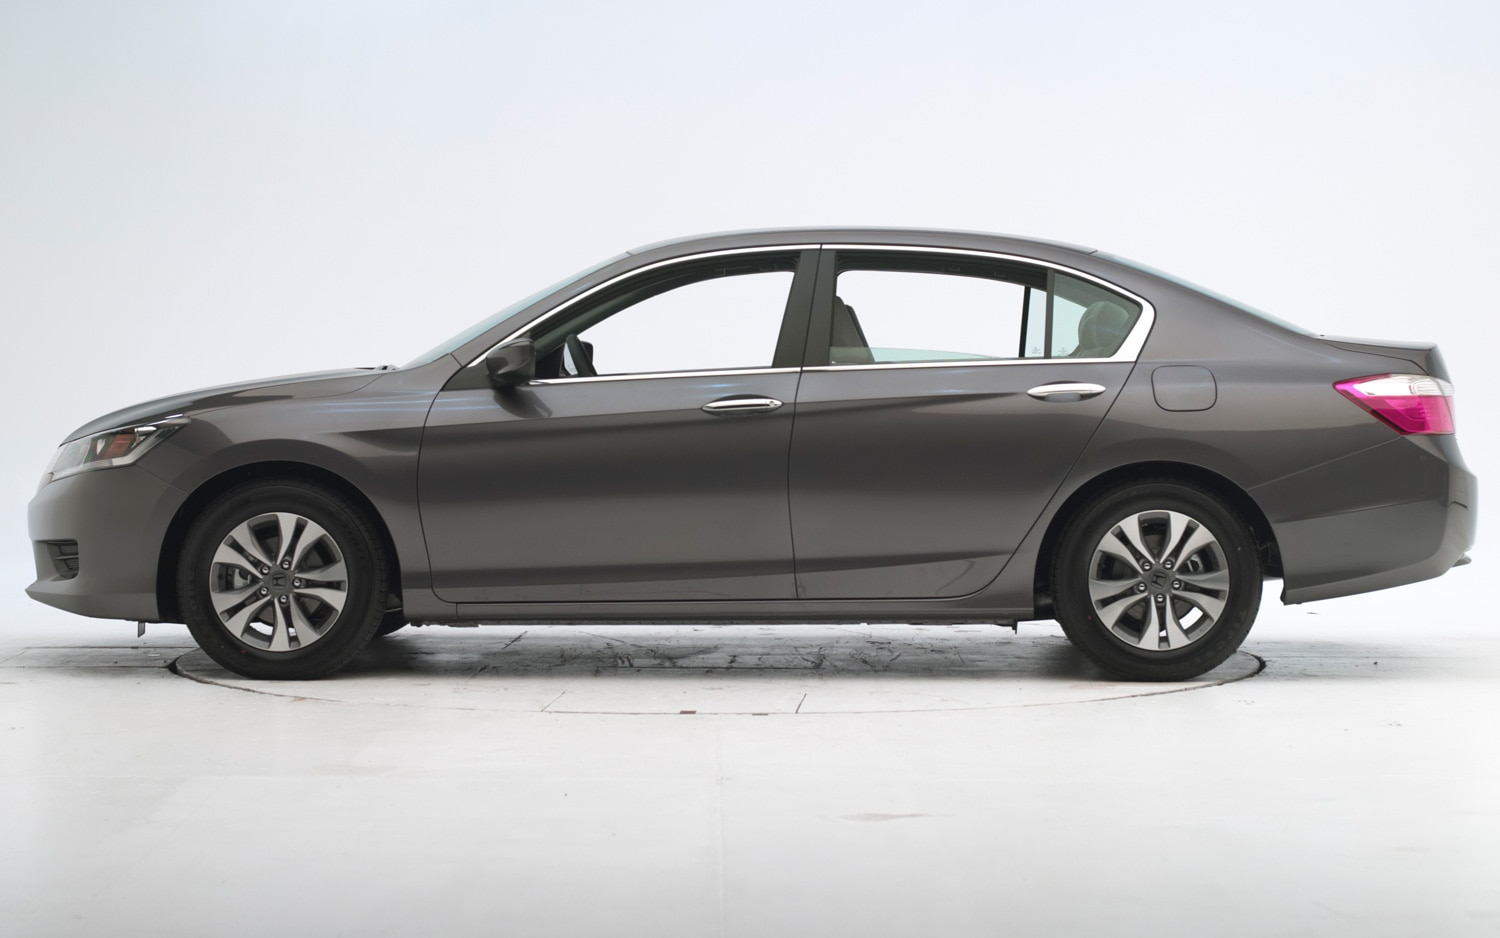 2013 Honda Accord Sedan IIHS Before Test1